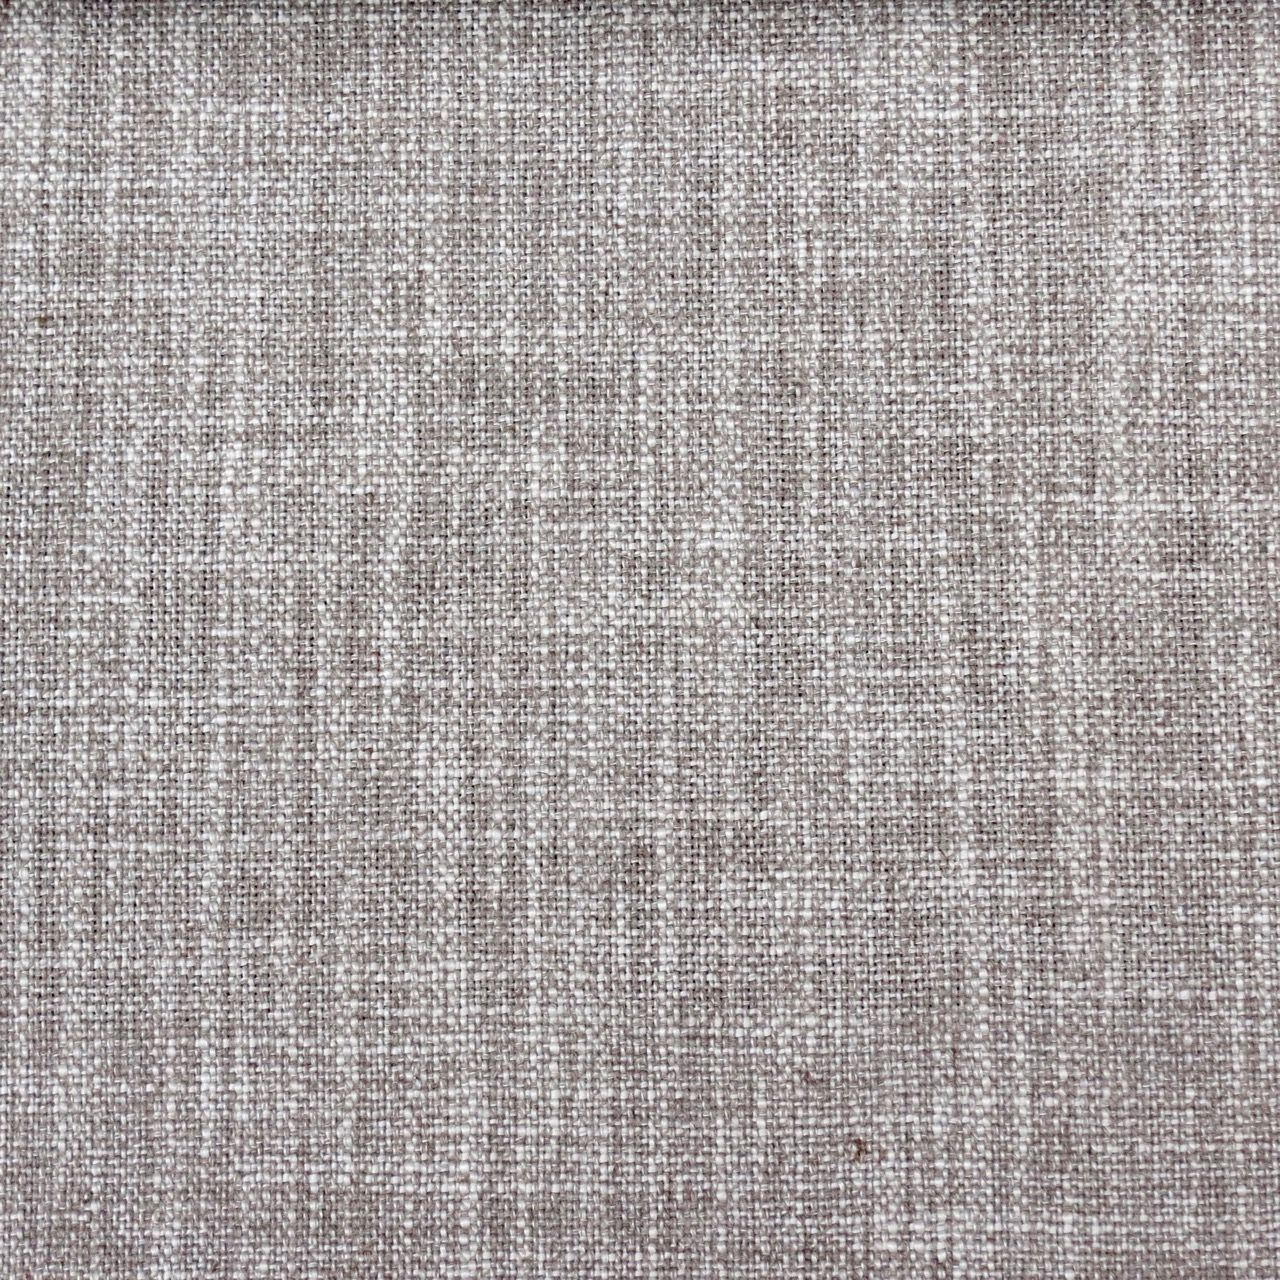 Misty Grey - Medium Linen